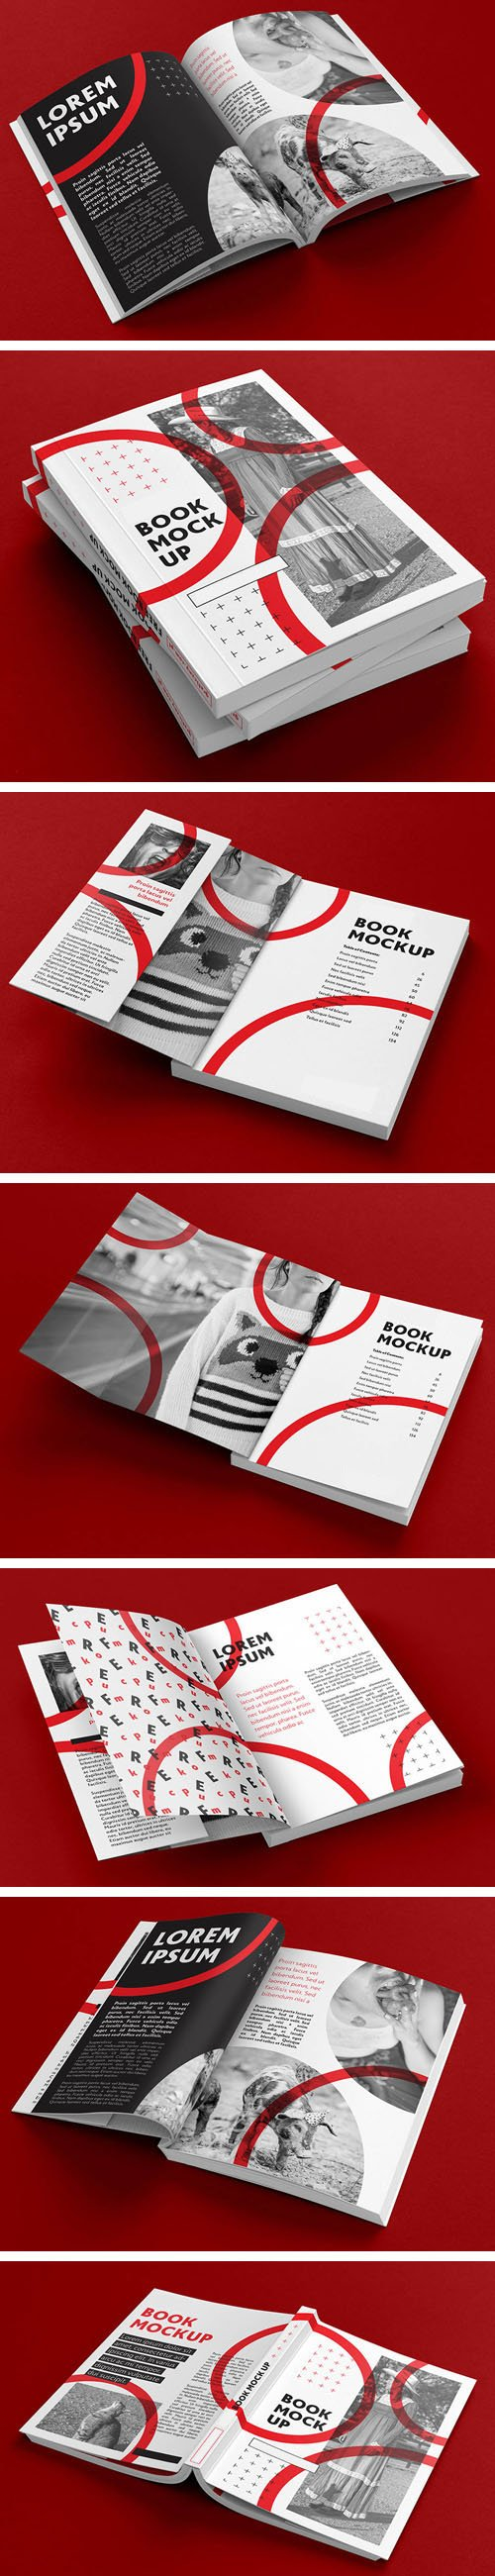 Book PSD Mockups Templates